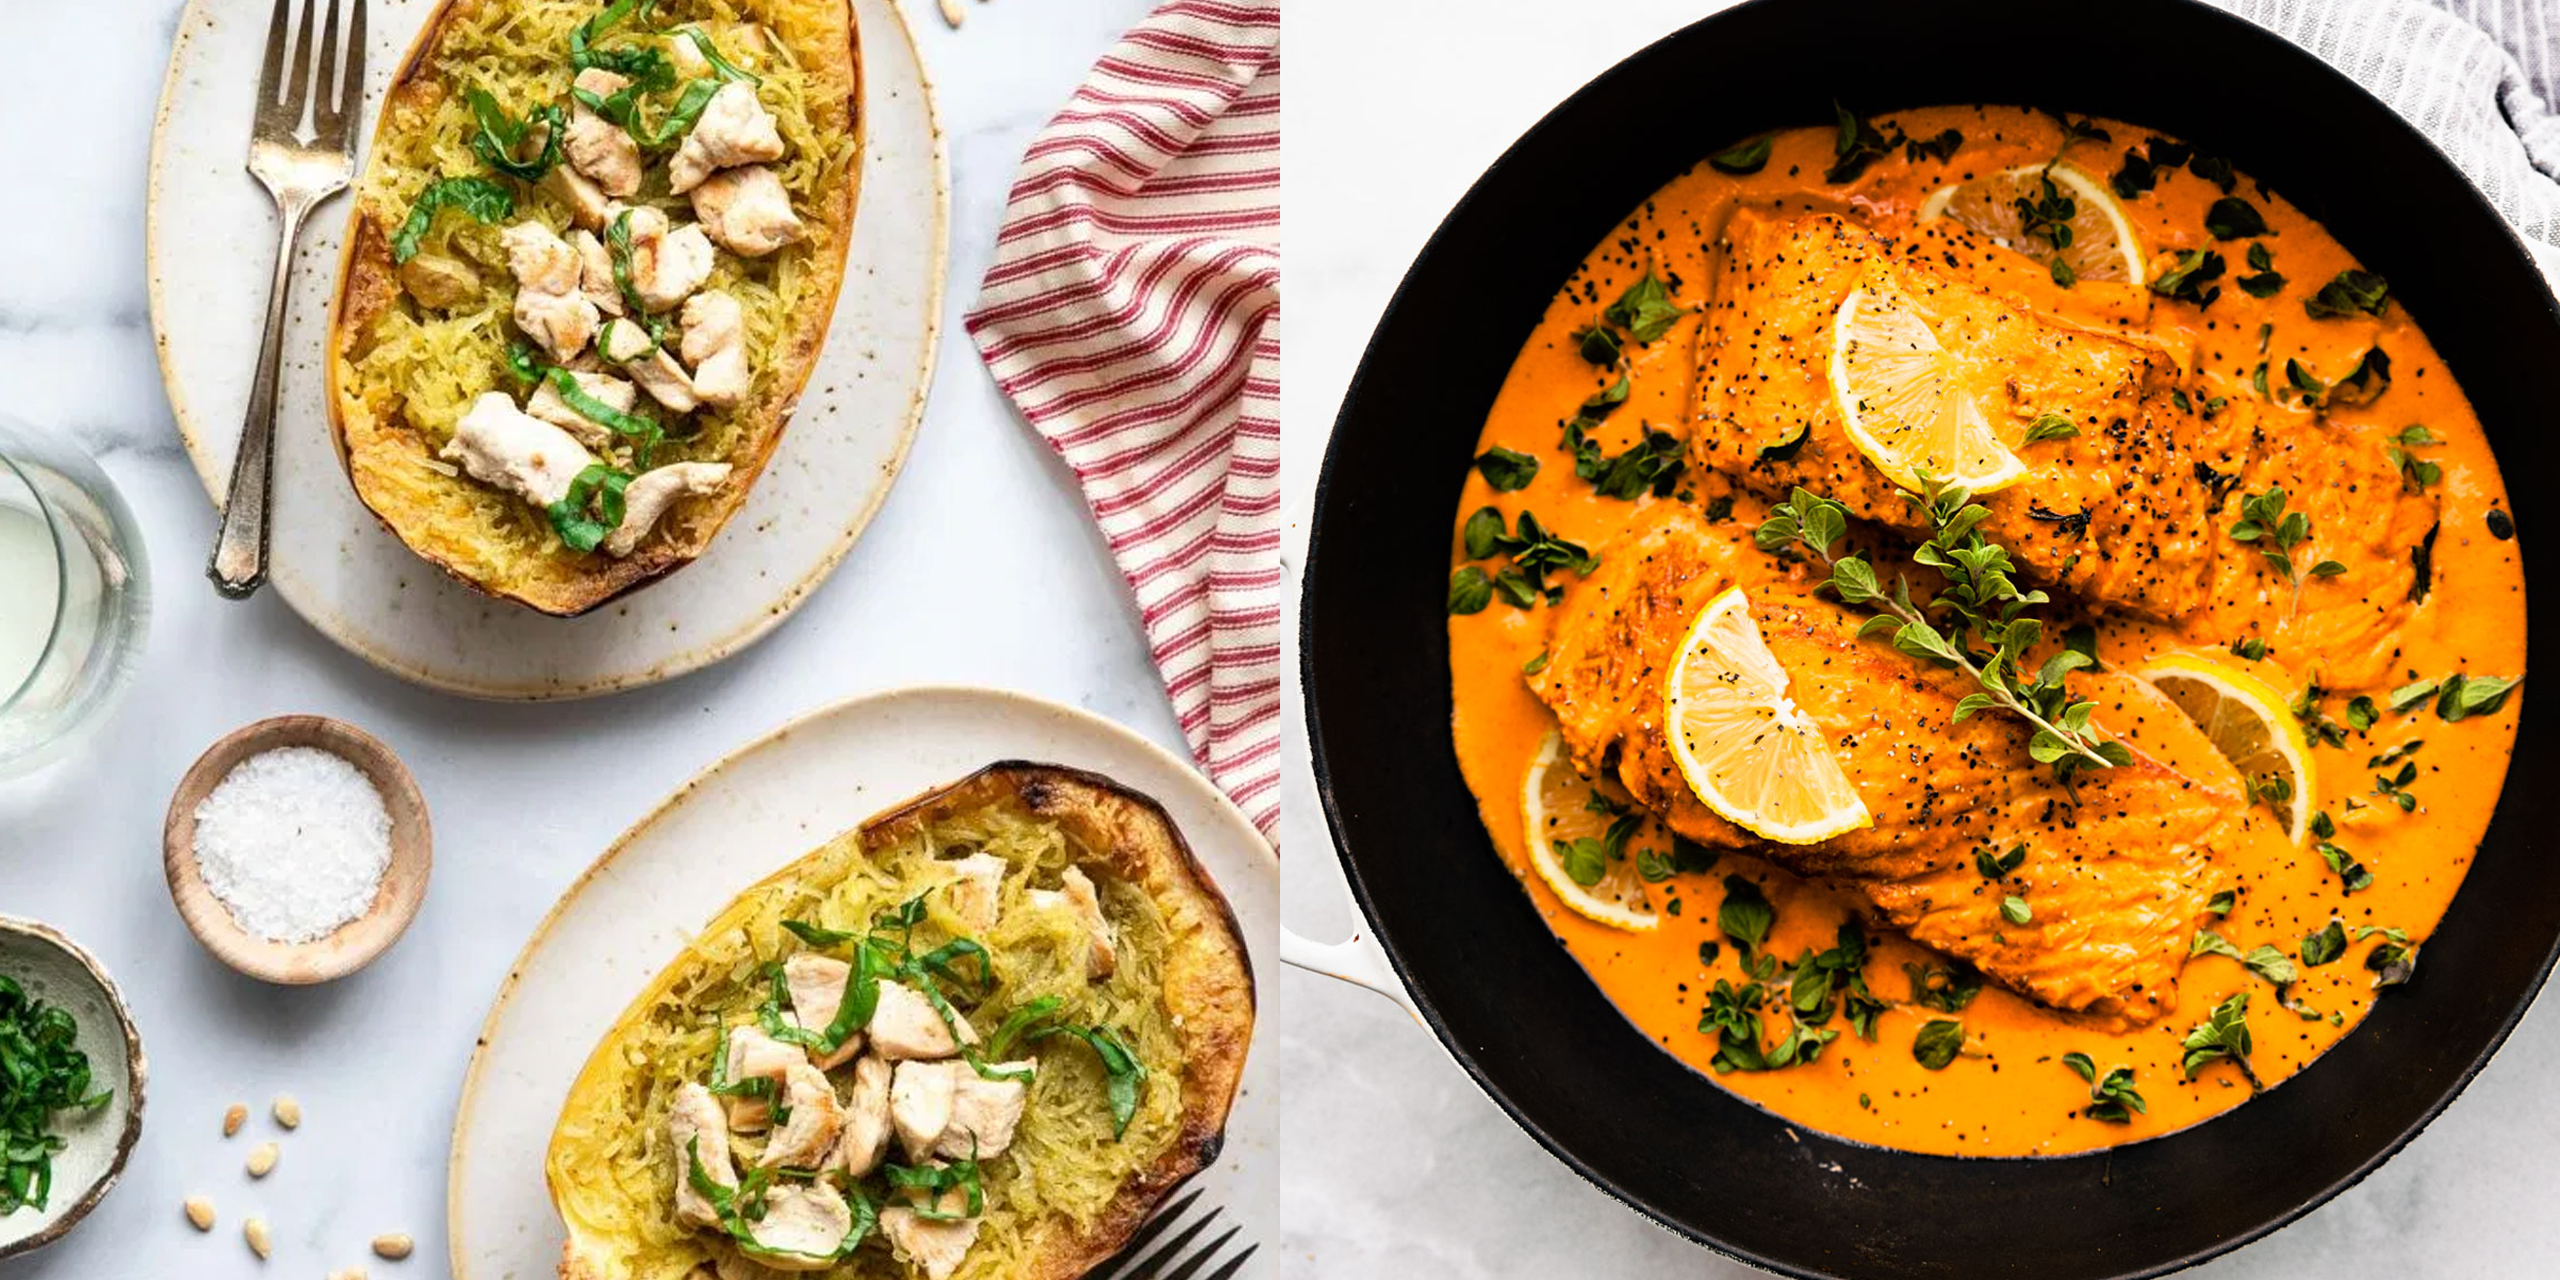 18 Healthy High Protein Low Carb Meals Ideas That Keep You Full